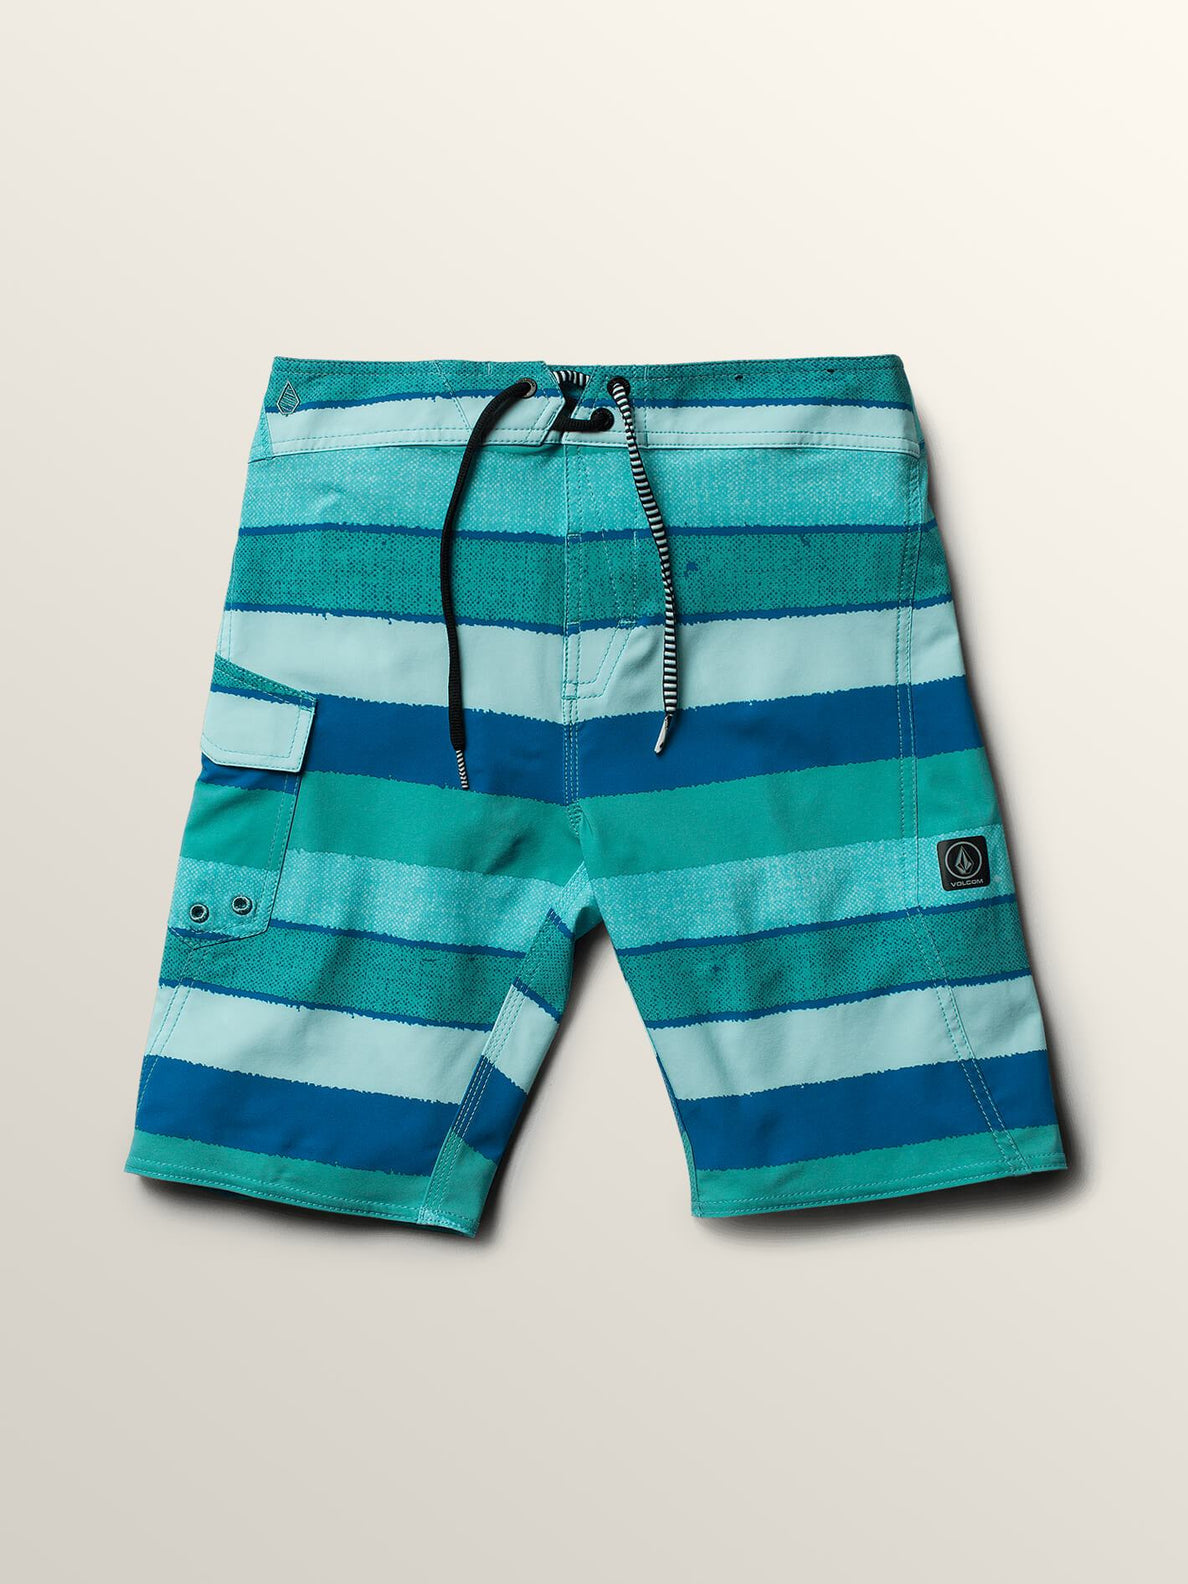 Big Boys Magnetic Liney Mod Boardshorts In Turquoise, Front View